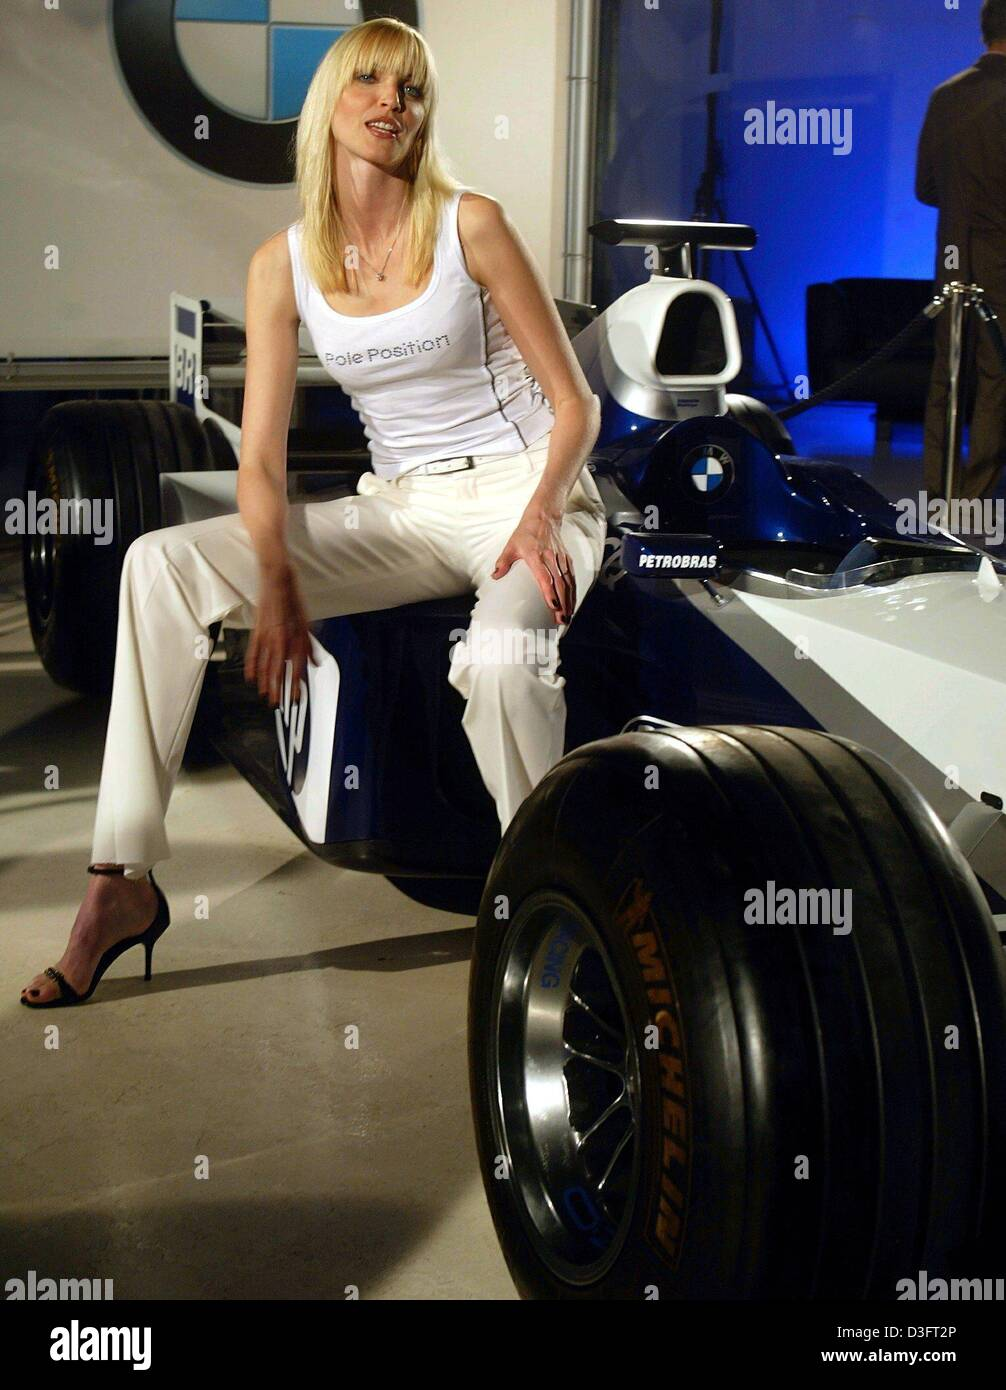 (dpa) - German top model Nadja Auermann poses on a BMW formula one race car to present the new collection for the - Stock Image